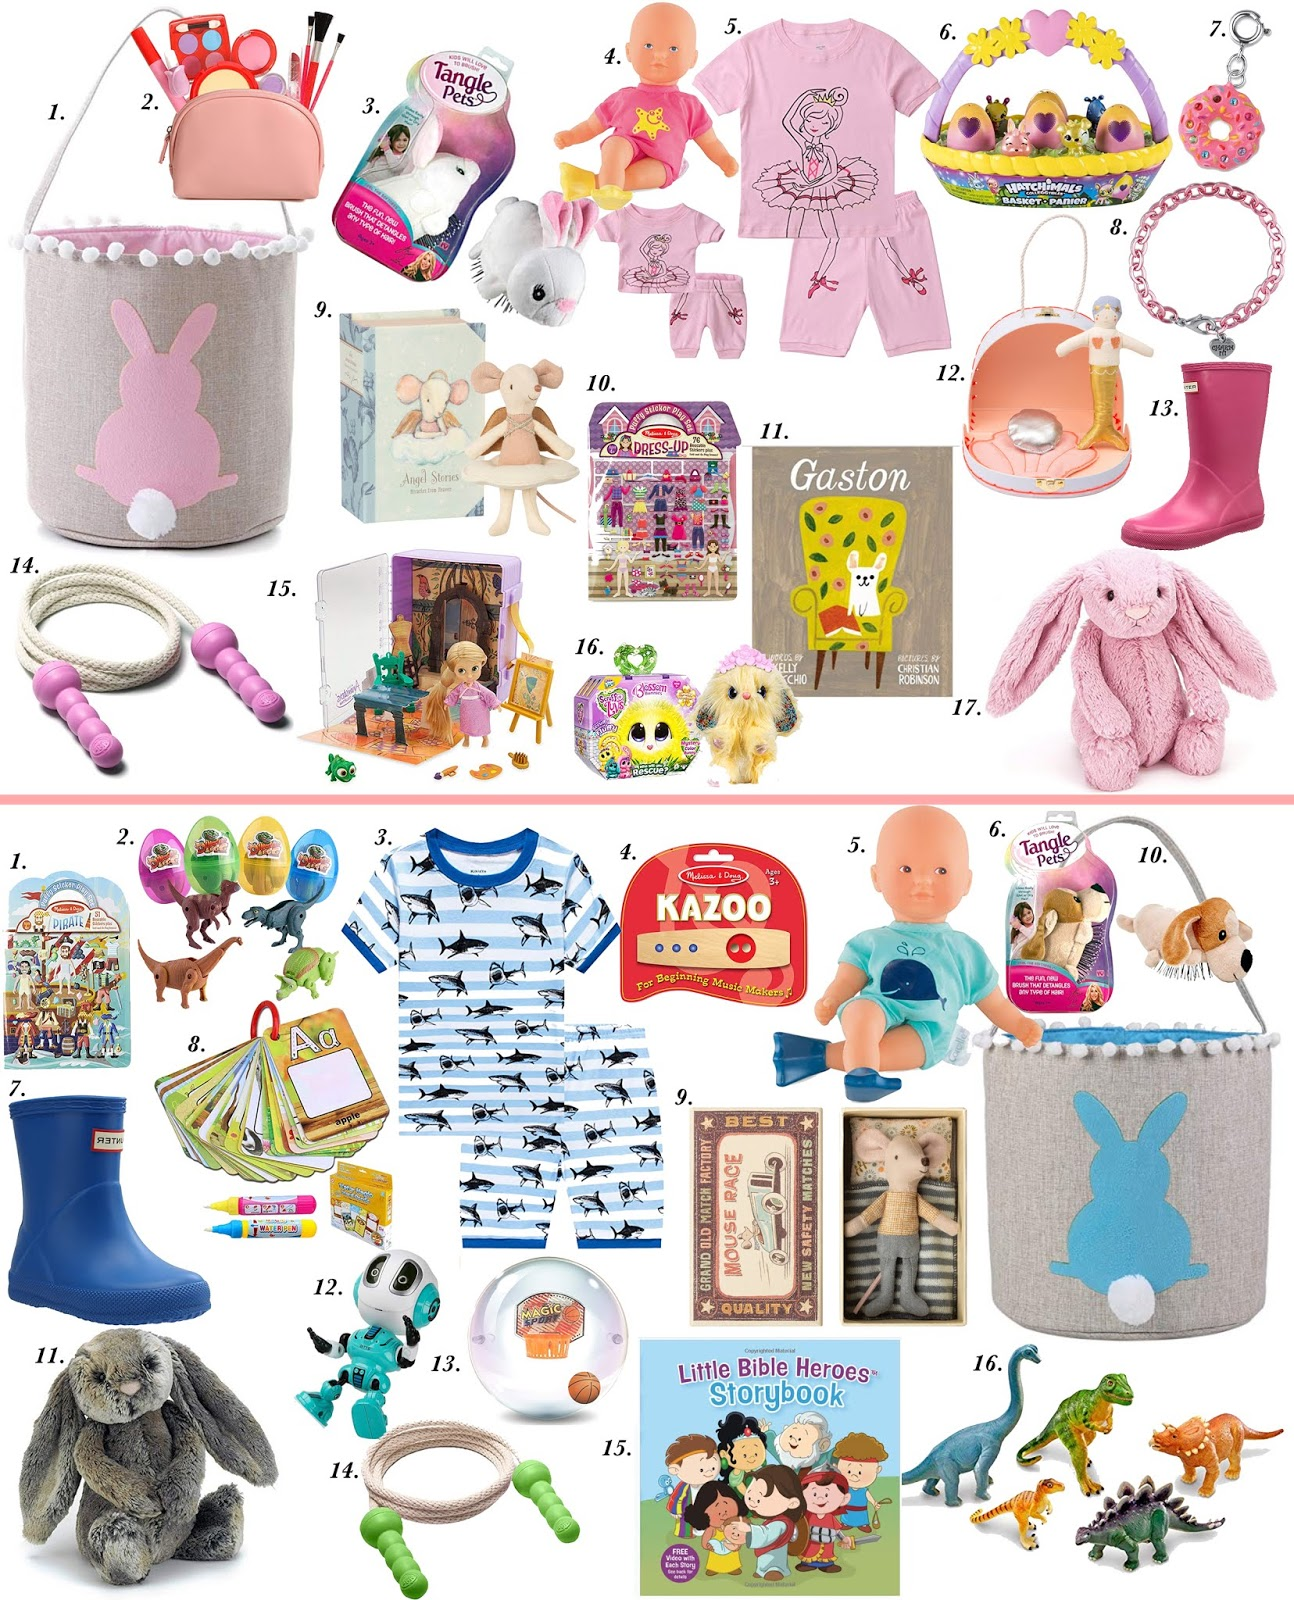 Easter Basket Ideas for Boys and Girls - Something Delightful Blog